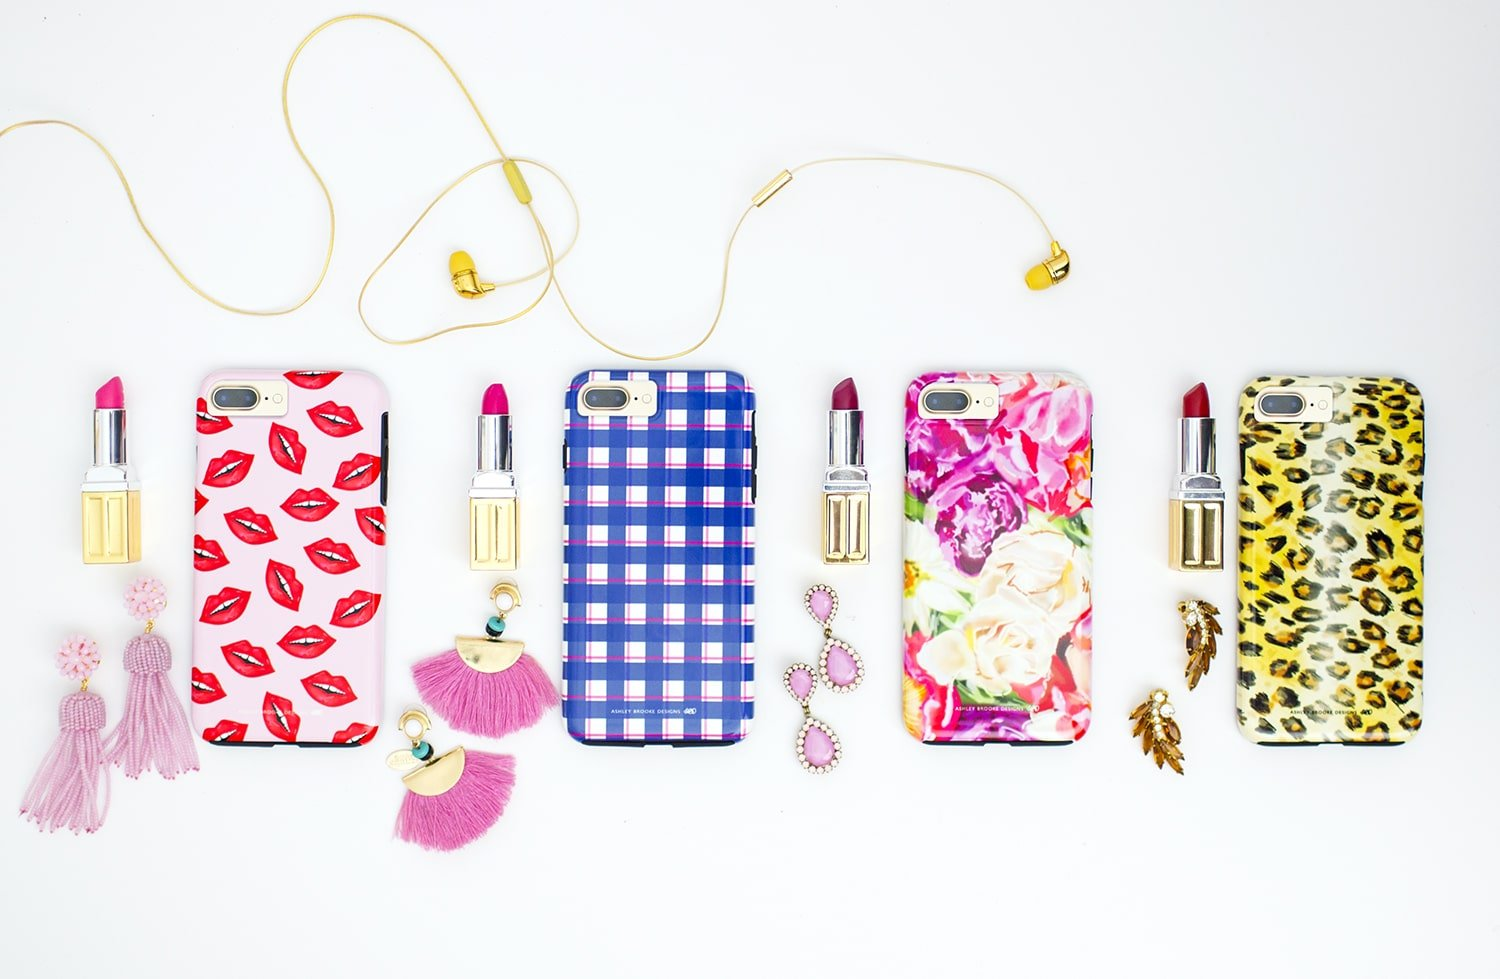 Ashley Brooke Designs Hand Illustrated Spring Phone Cases | ashleybrookedesigns.com